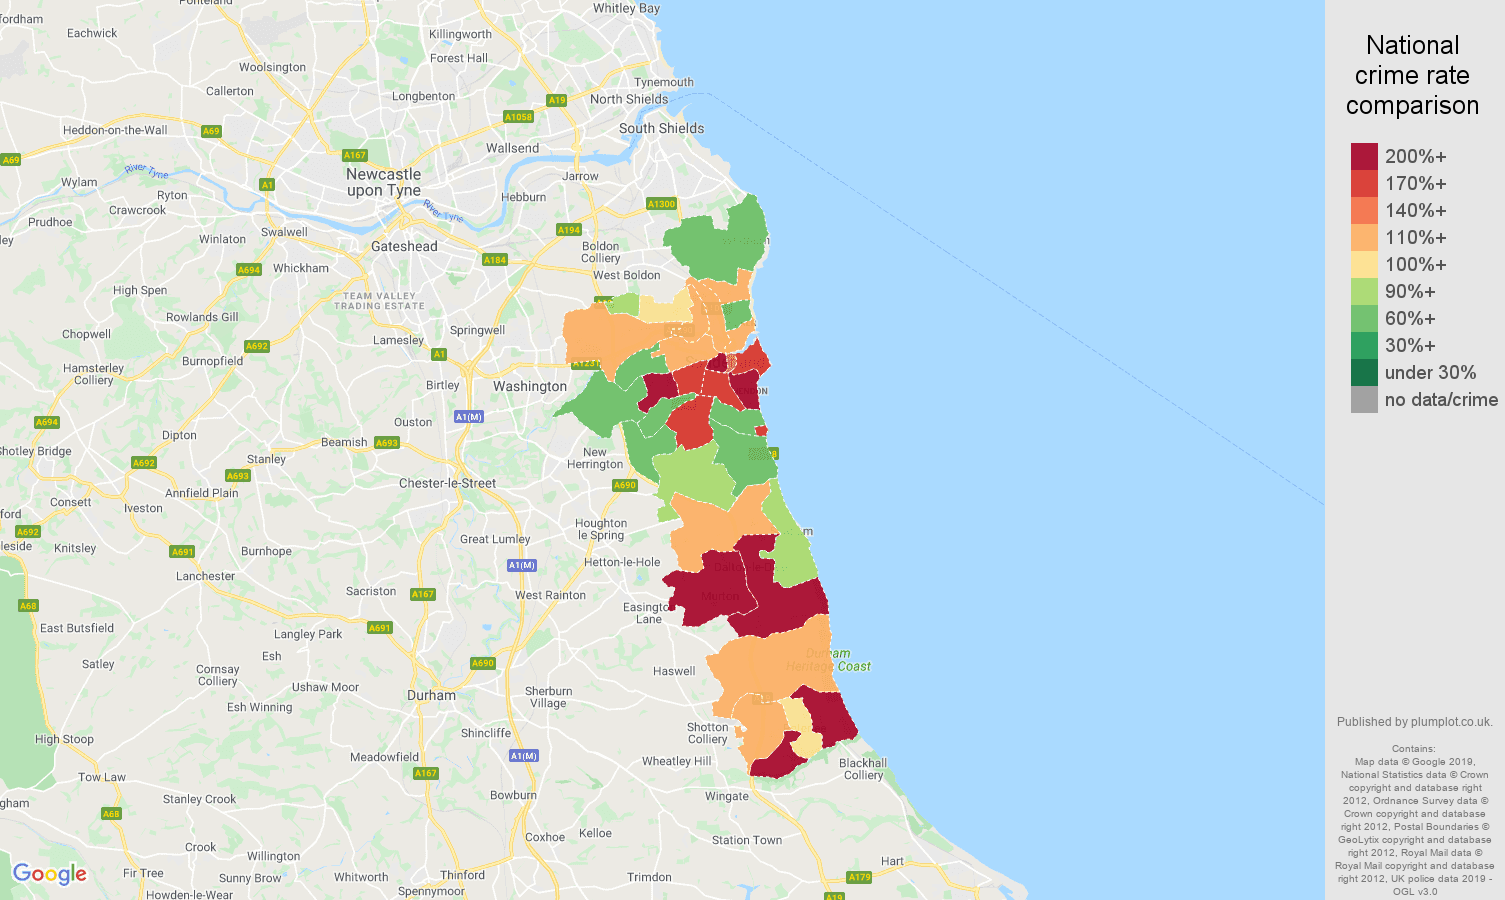 Sunderland other theft crime rate comparison map